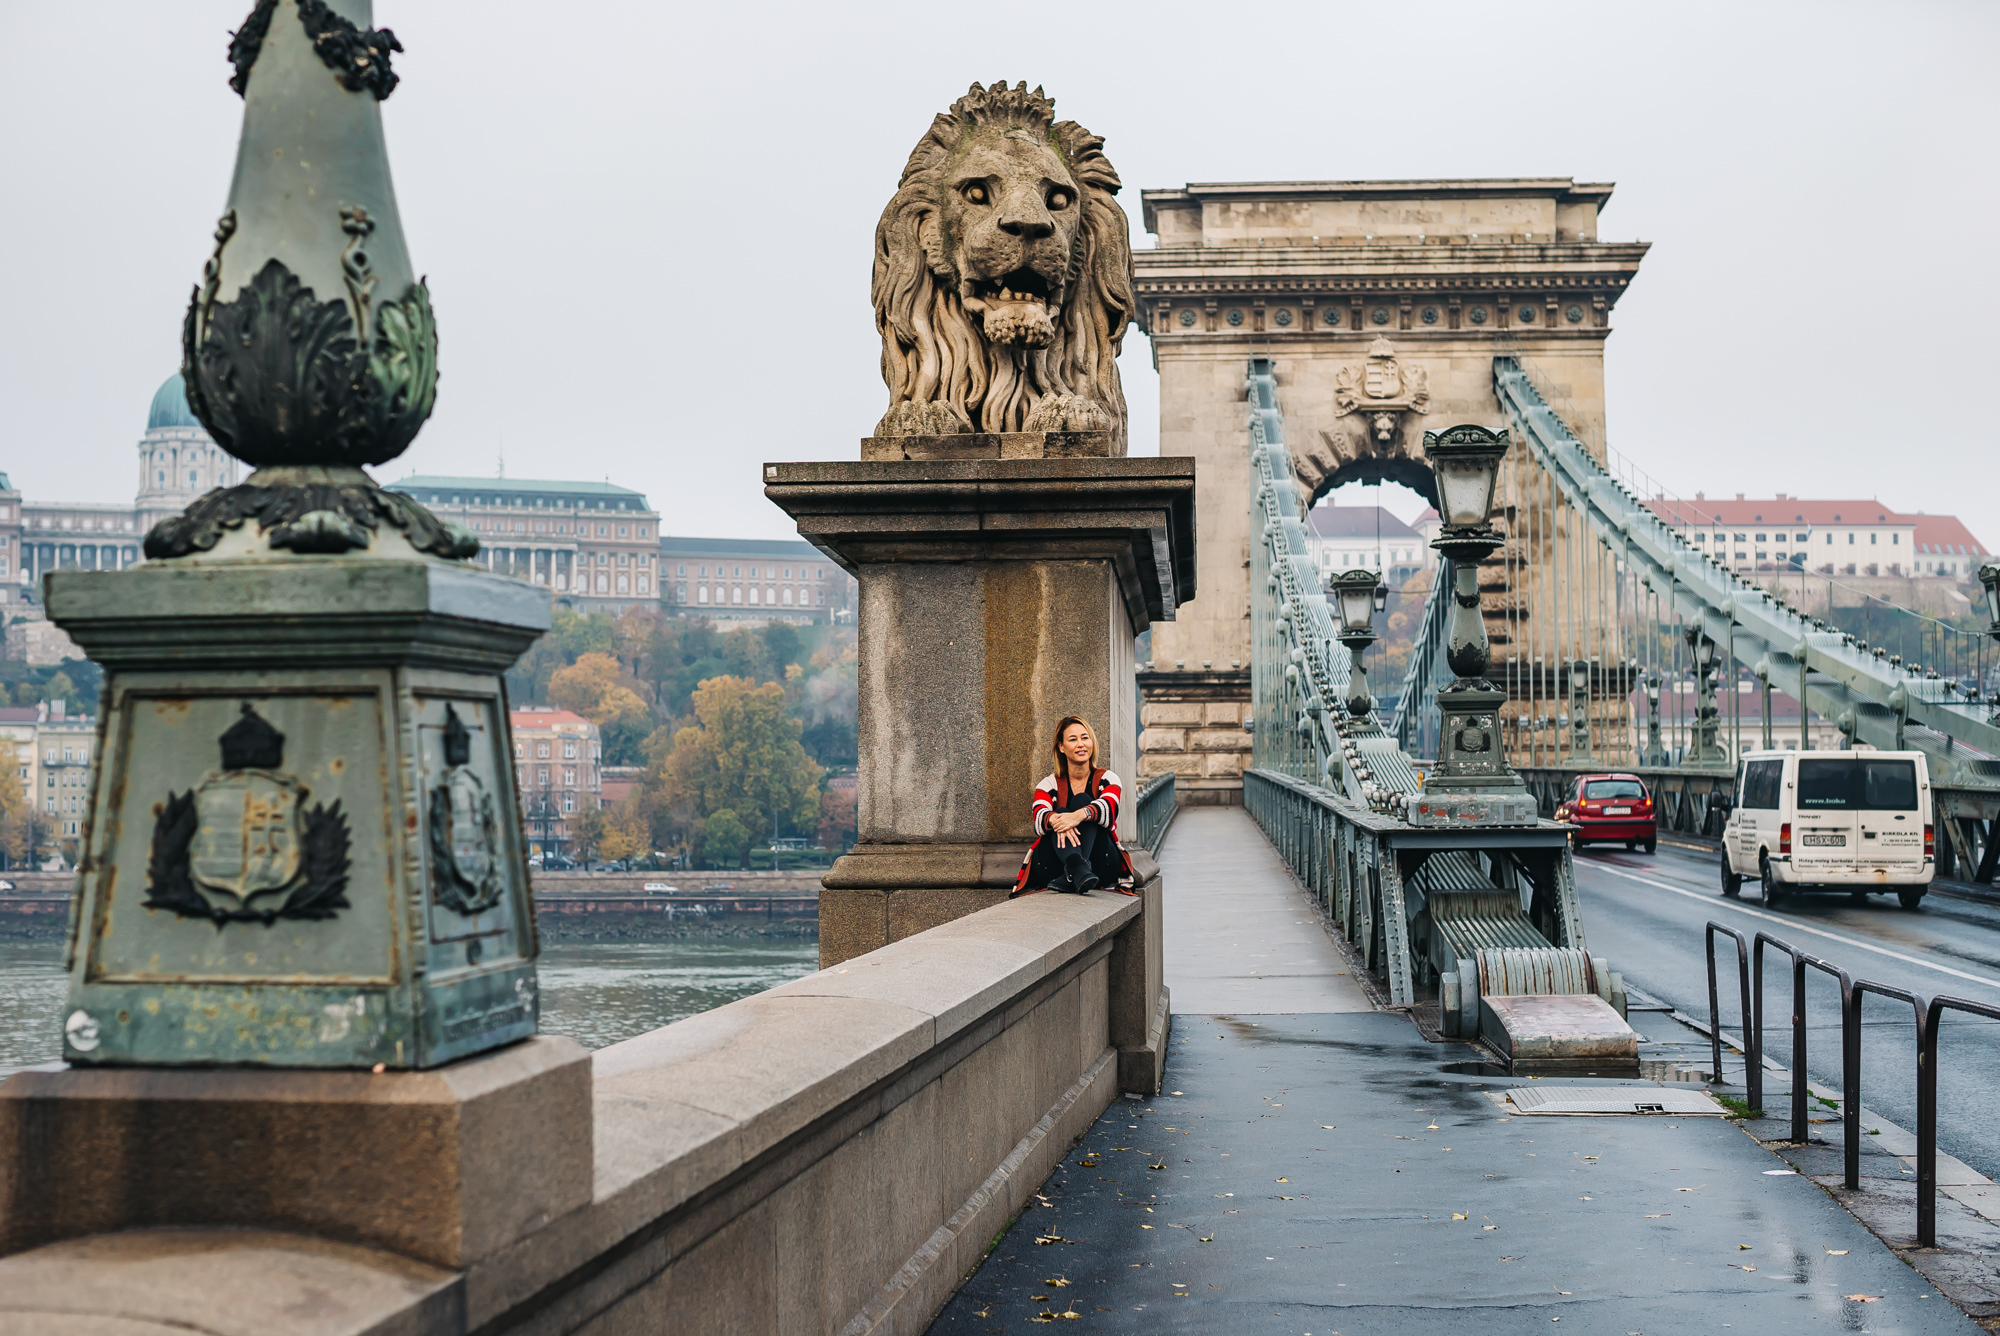 The famous Chain Bridge in Budapest, Hungary